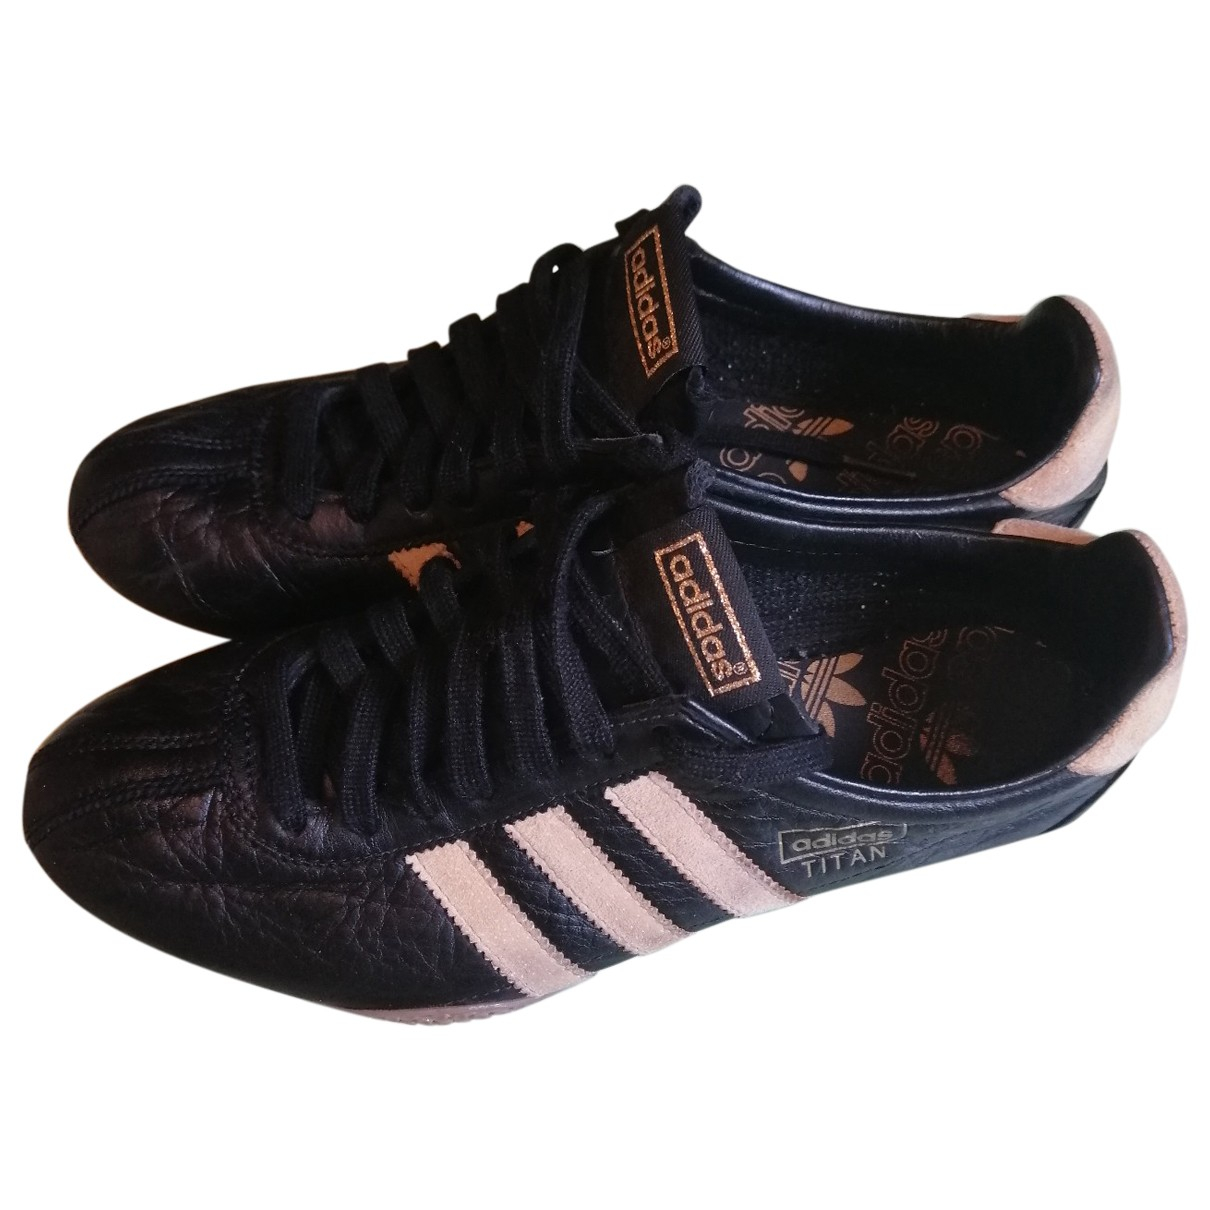 Adidas \N Black Leather Trainers for Men 40 EU